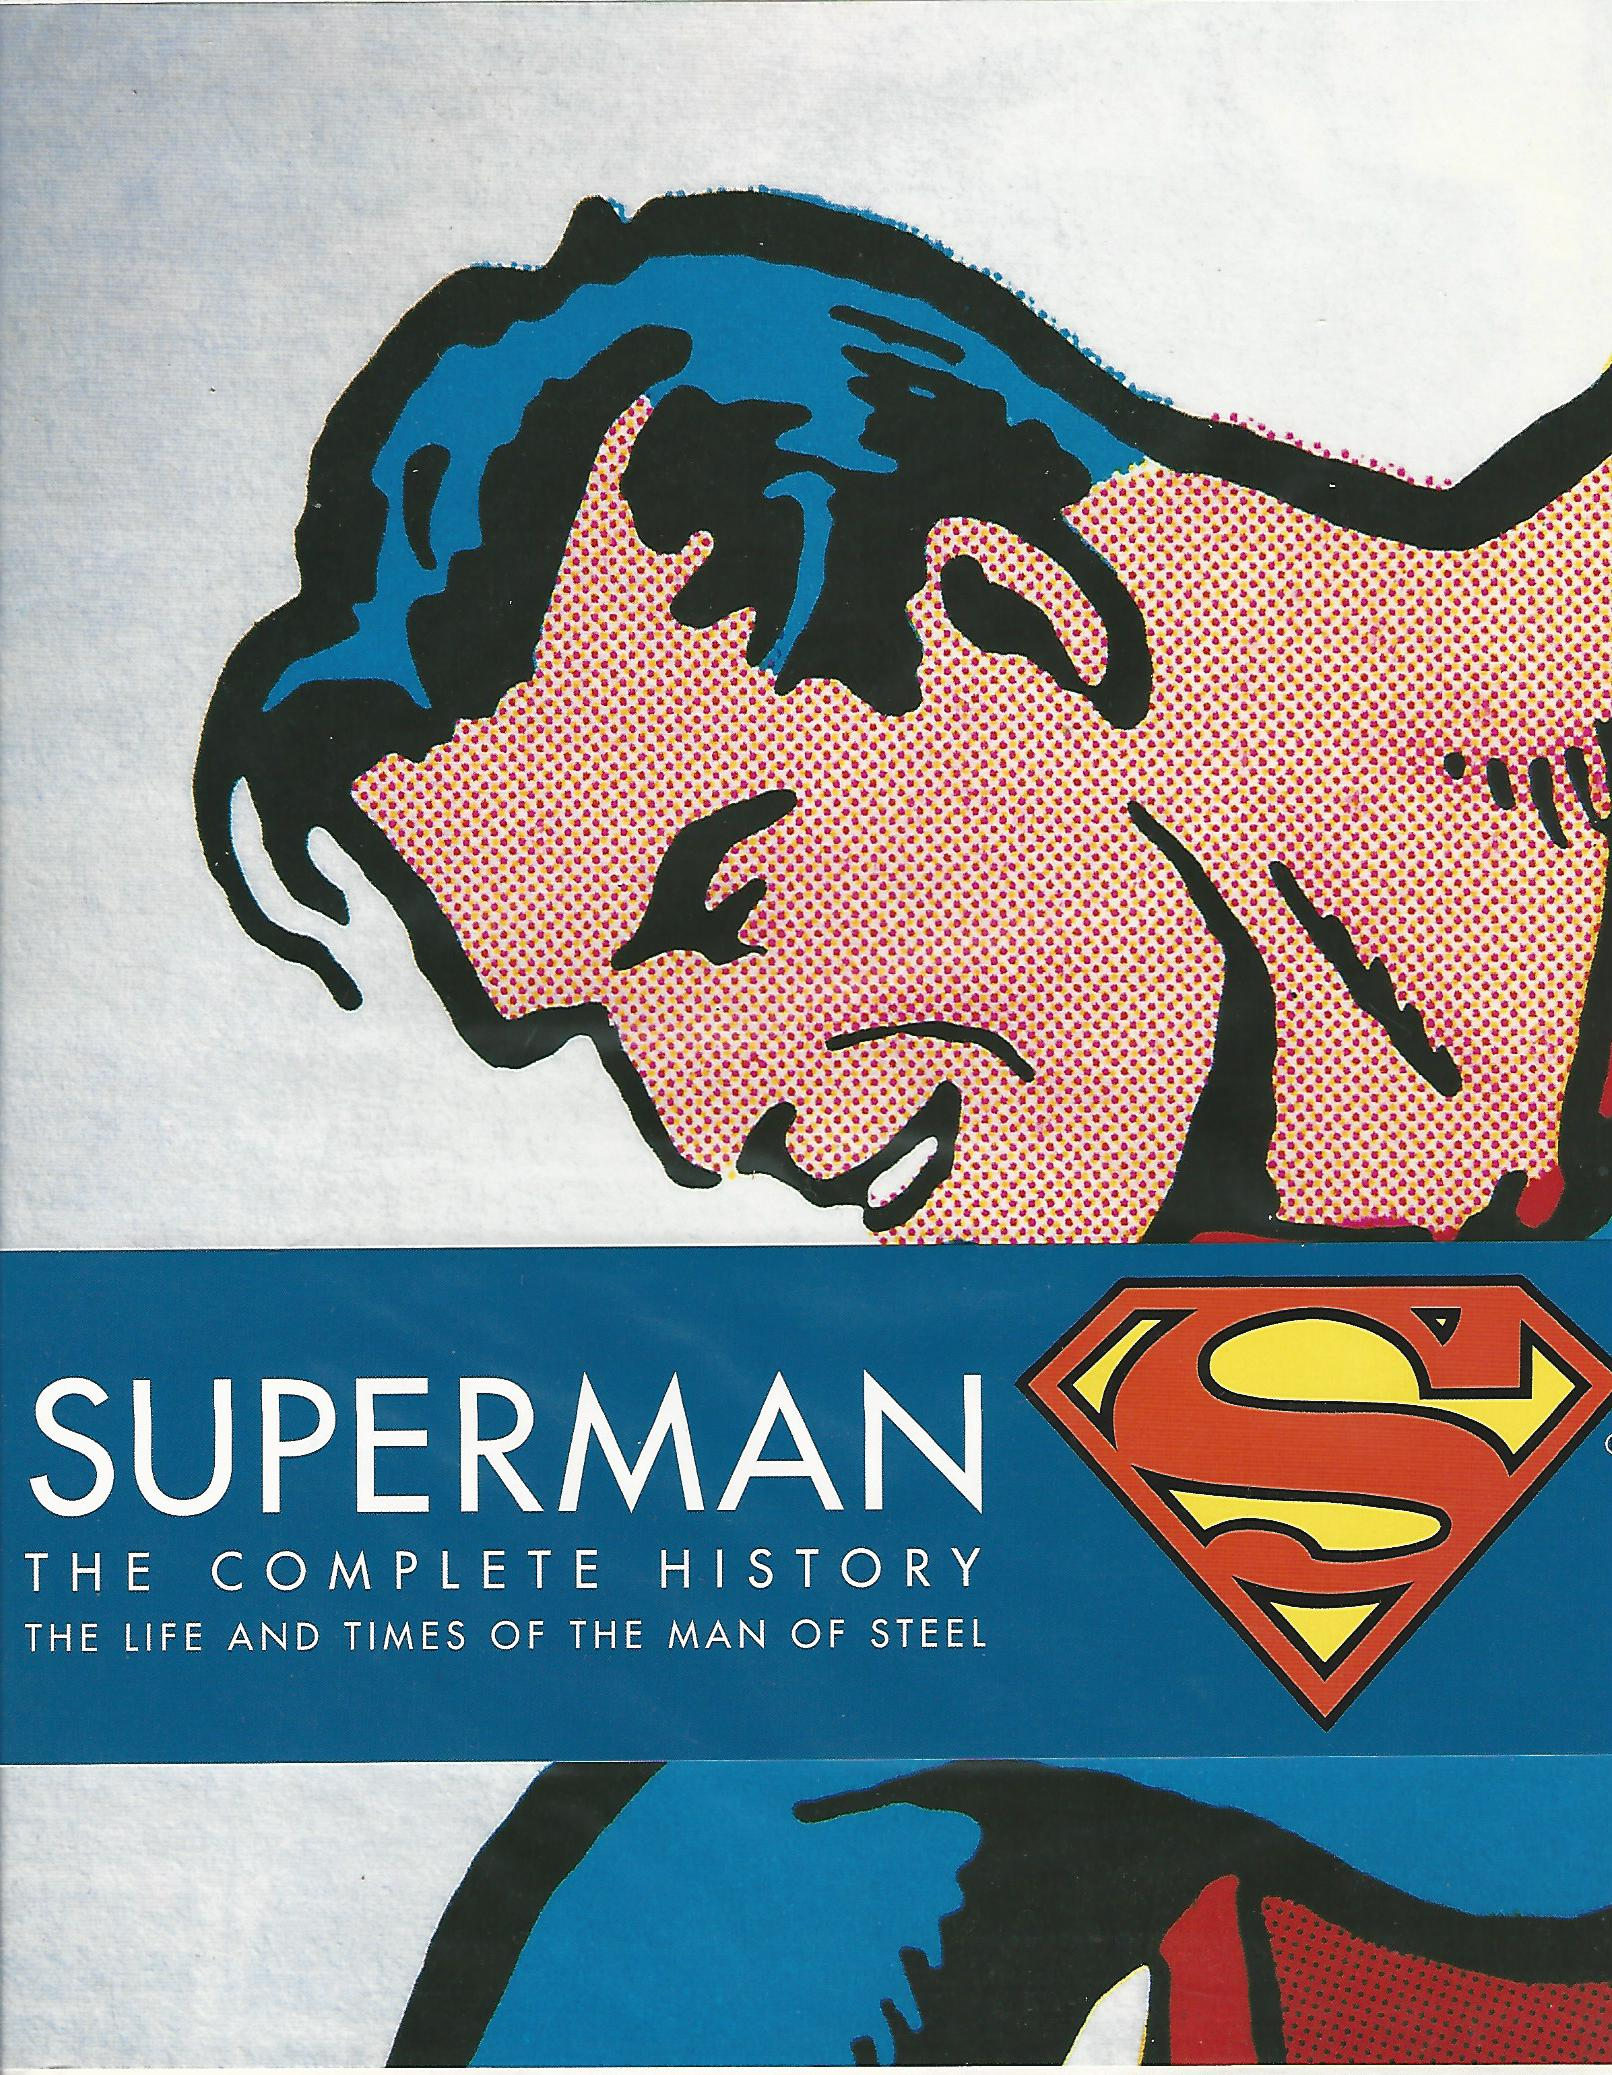 Image for Superman: Complete History - The Life and Times of the Man of Steel.